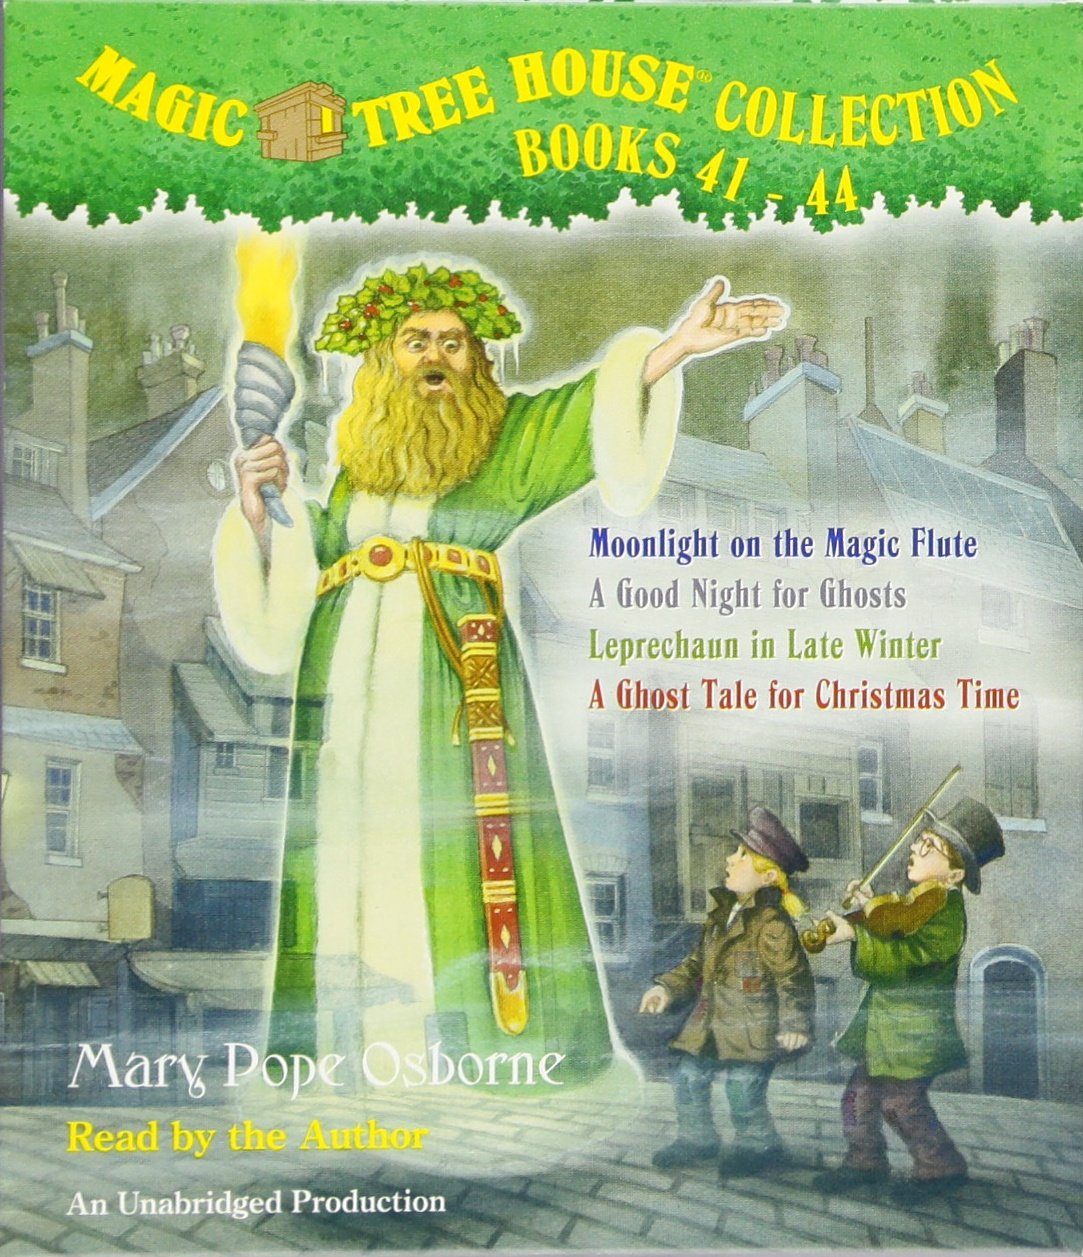 Magic Tree House Collection Books 41 44 41 Moonlight On The Magic